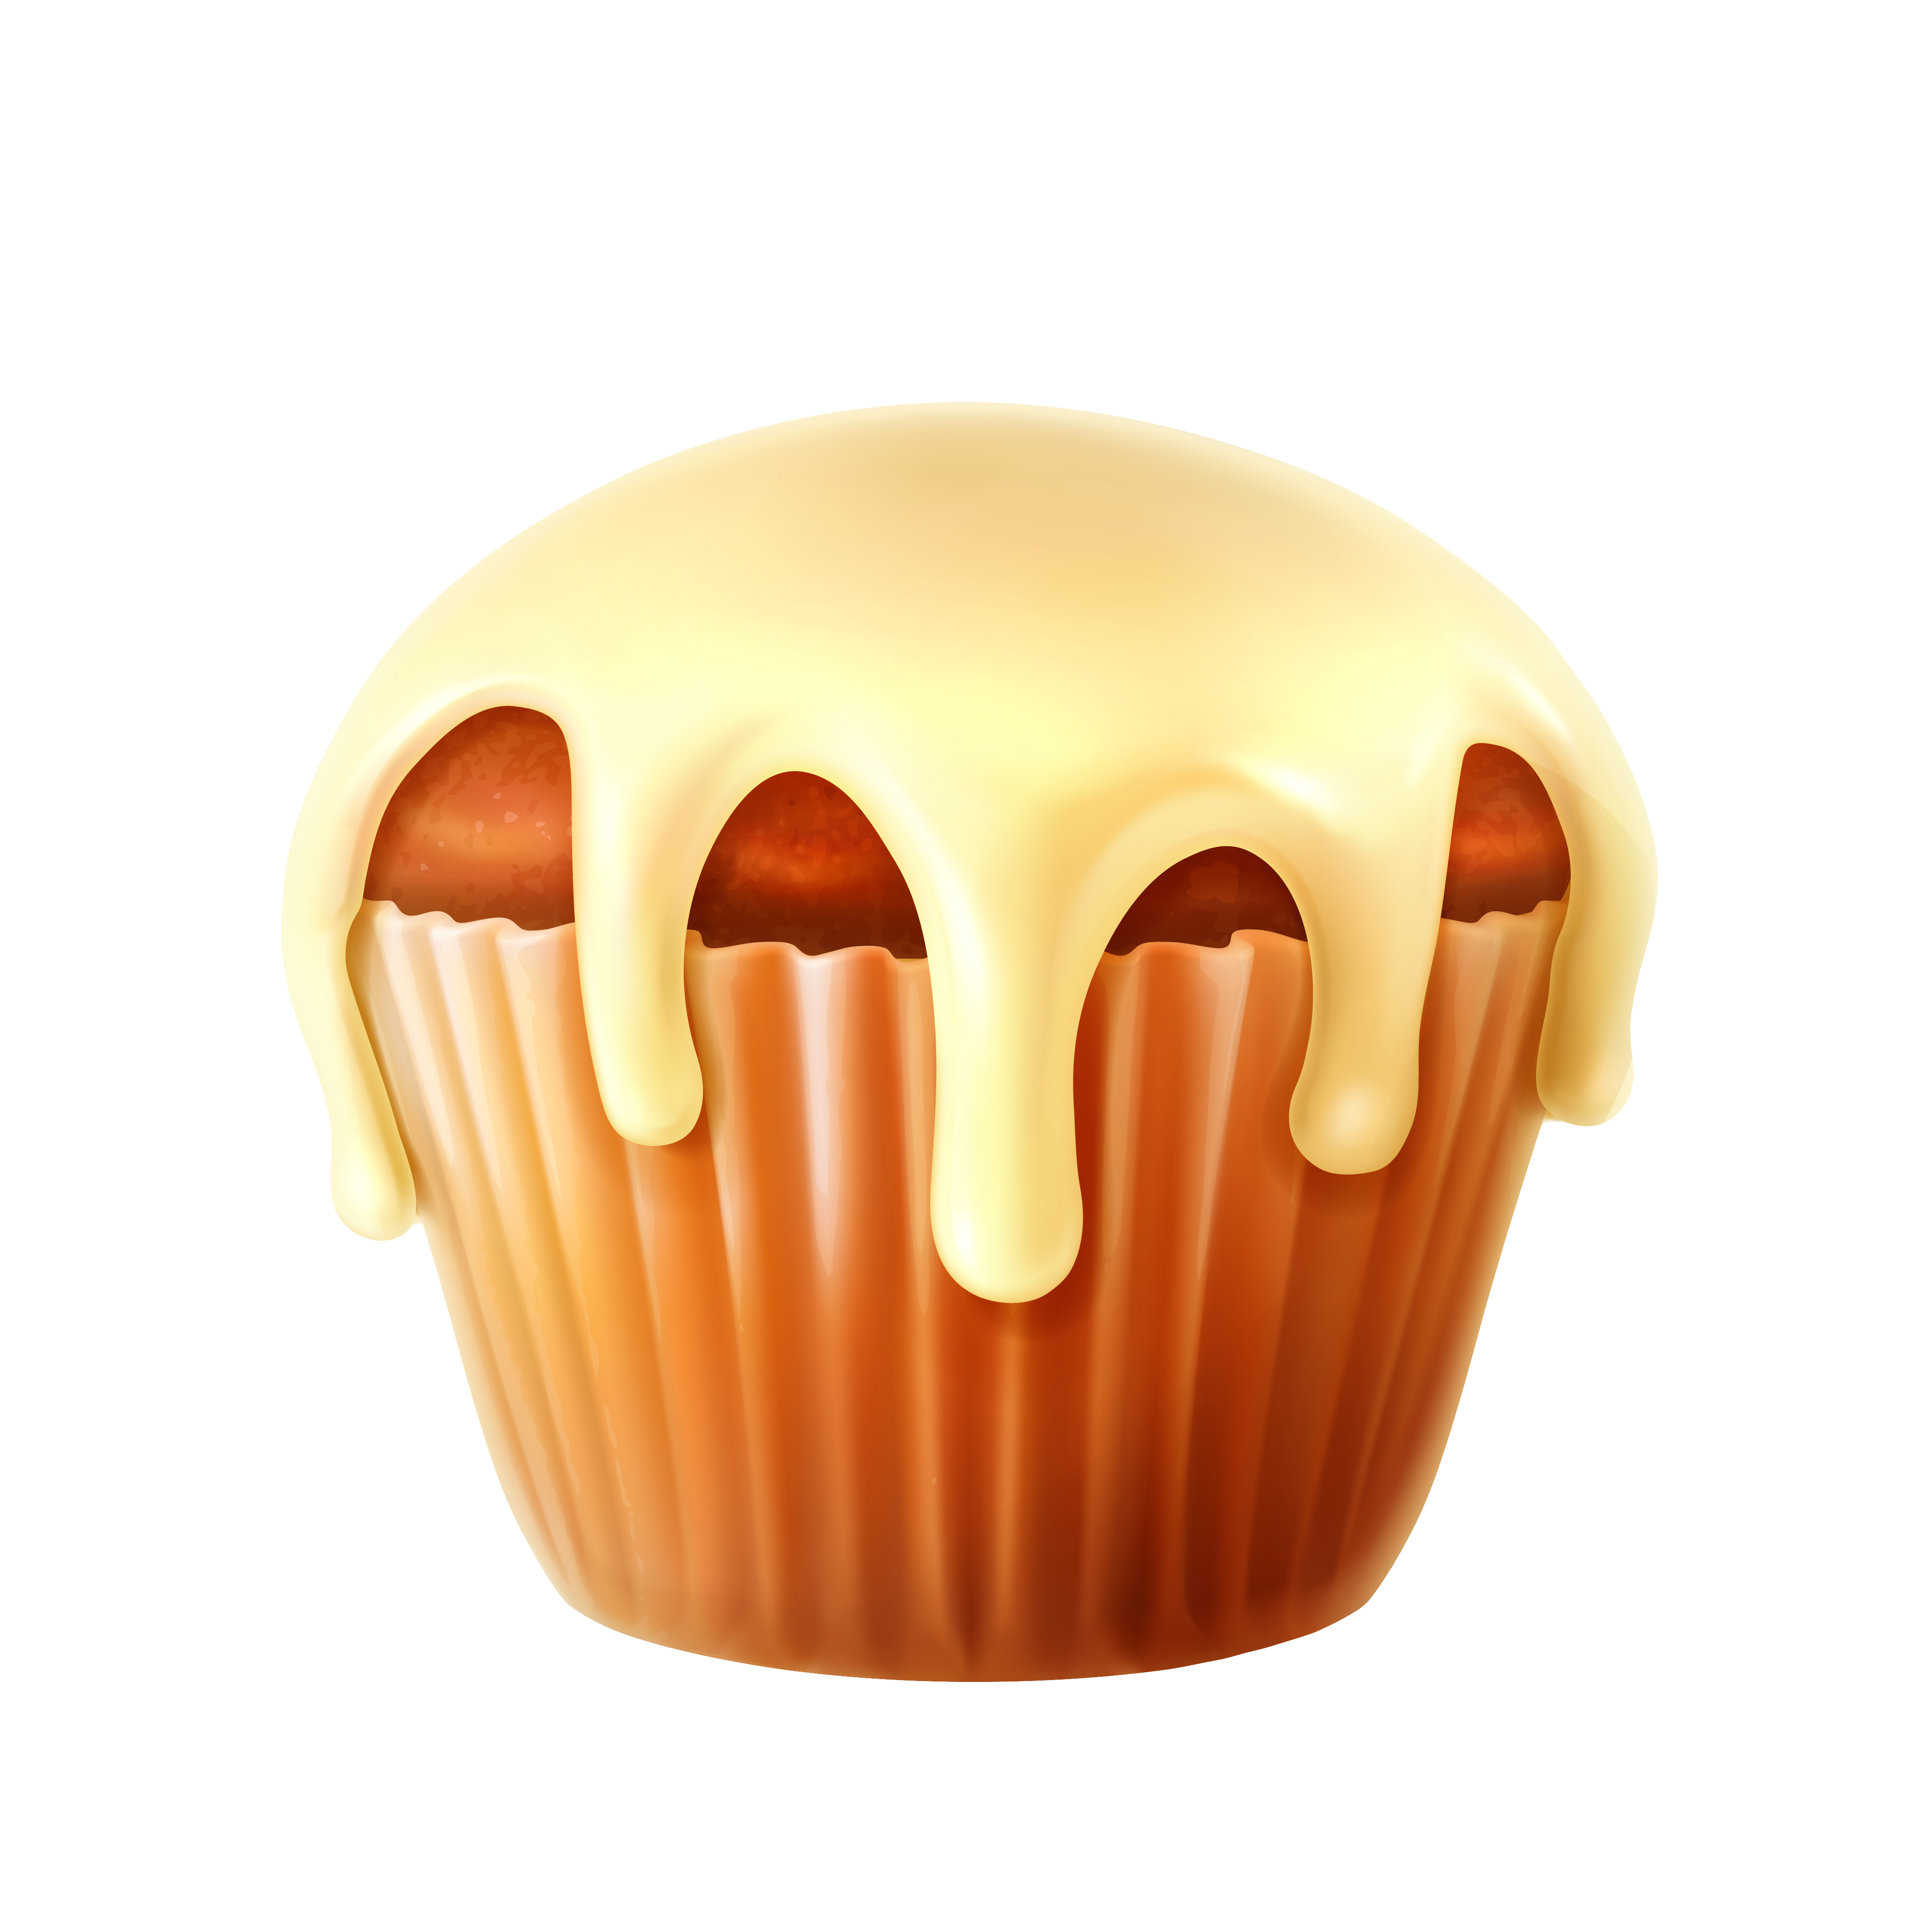 Apple muffin clipart clip free download Cupcake Drawing Clip art - Cream cake 4134*4134 transprent Png Free ... clip free download